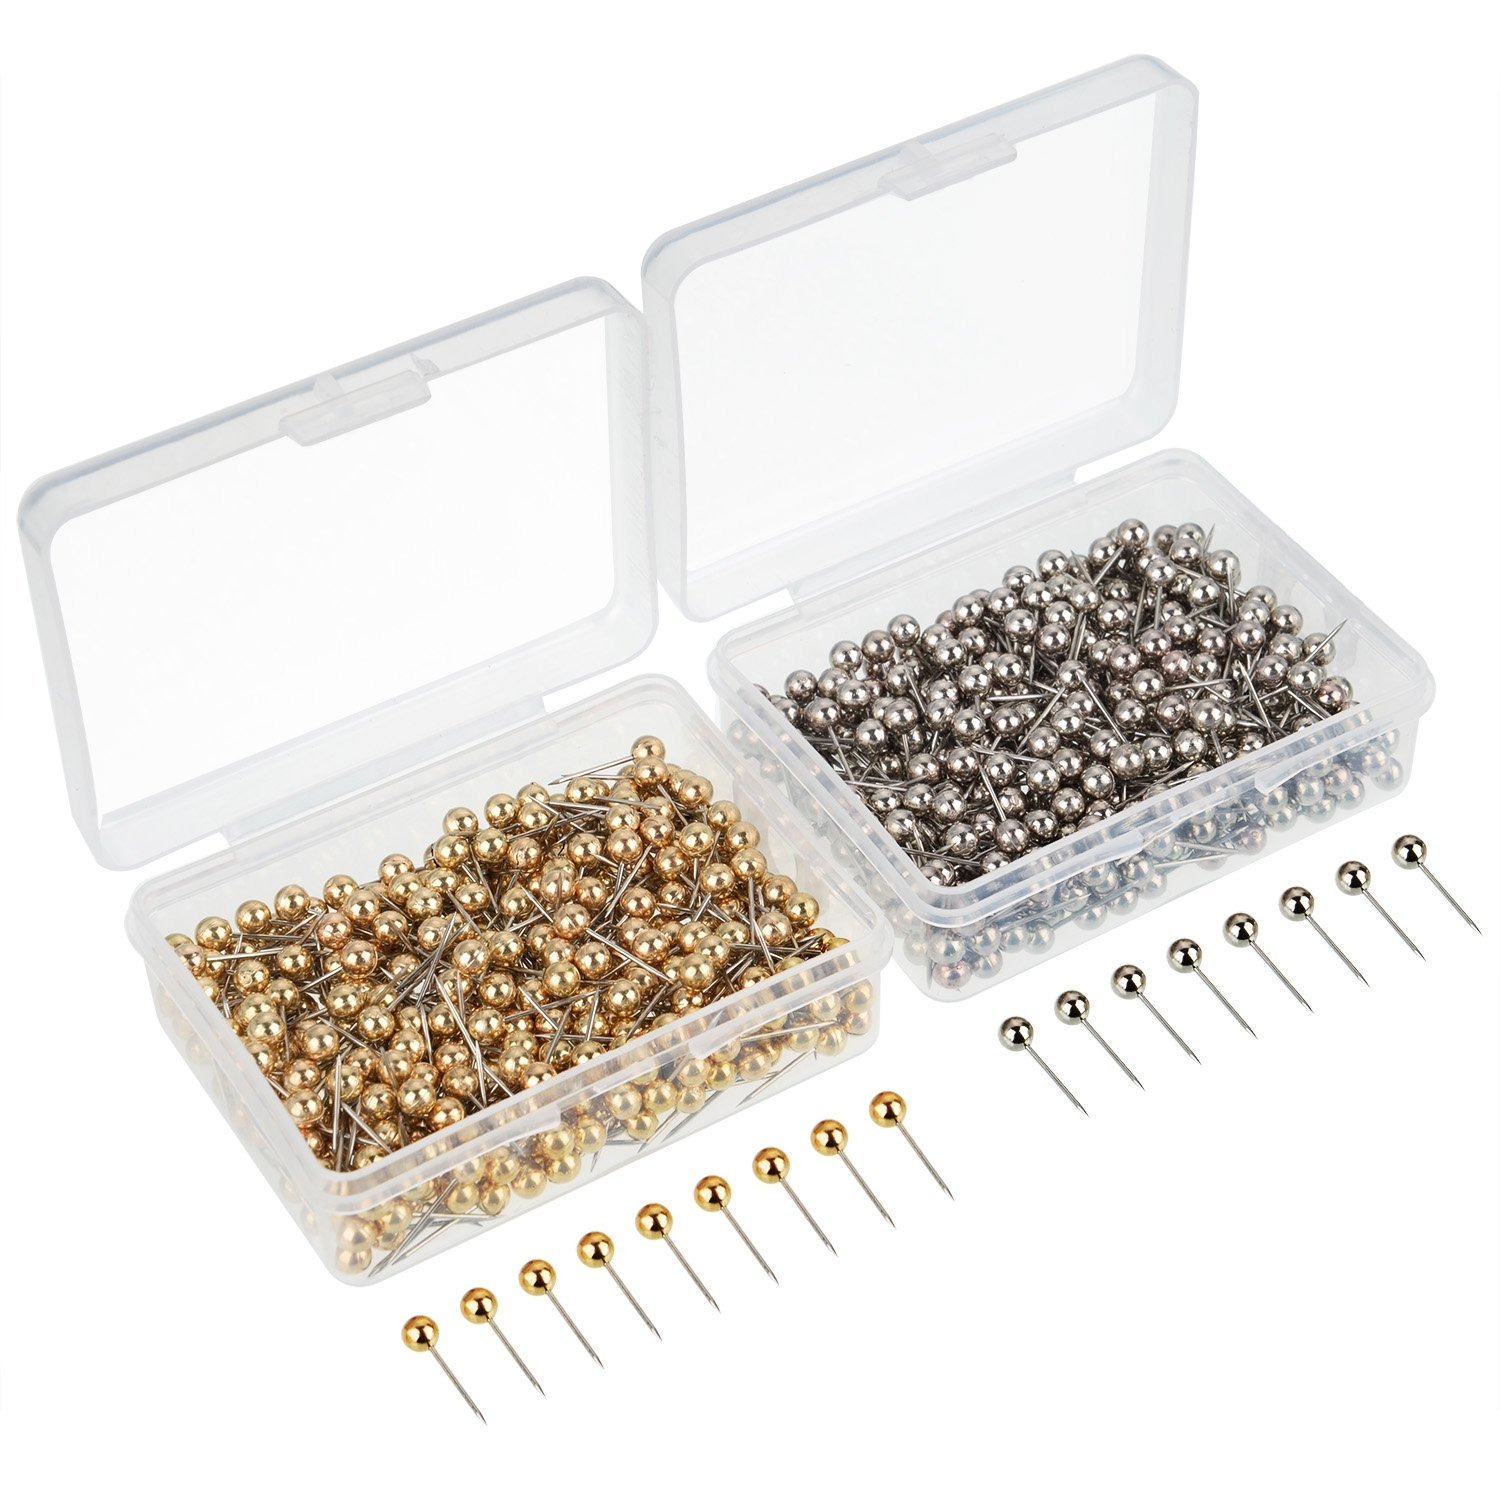 800 Pieces Map Tacks Push Pins Round Plastic Head With Stainless Steel Point, 0.16 Inch Head, Gold And Silver